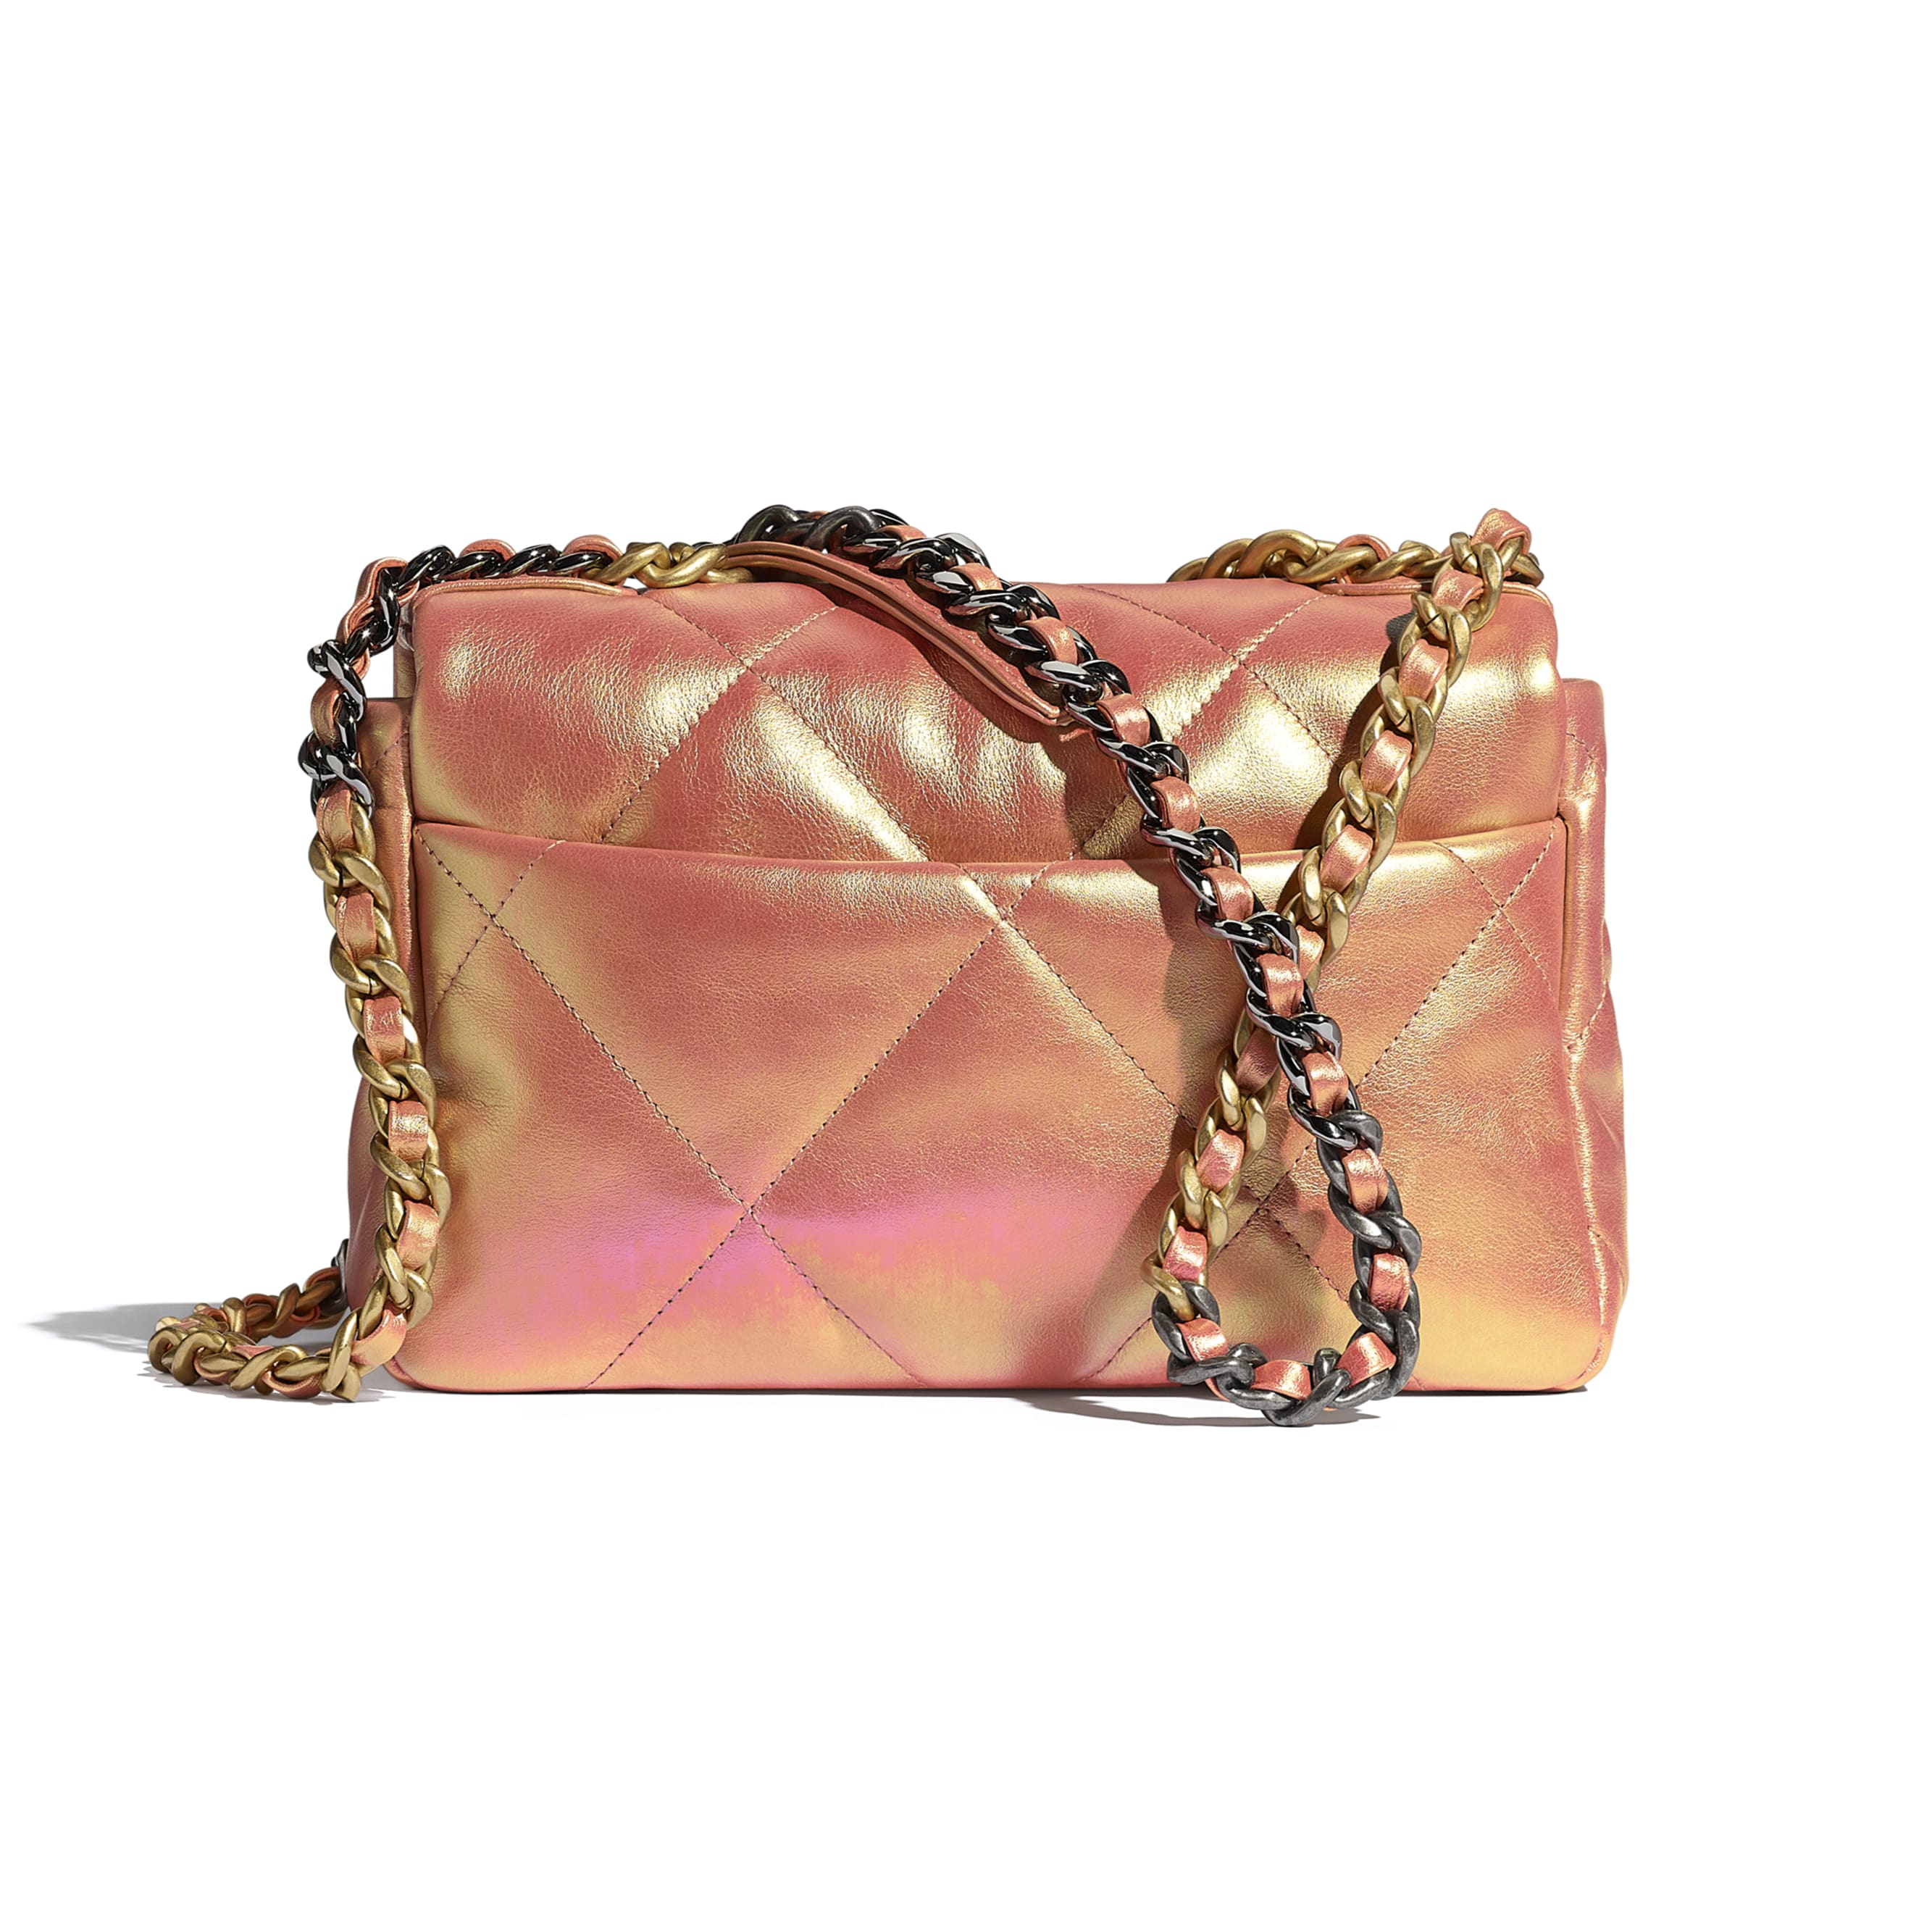 CHANEL 19 Flap Bag - Pink - Iridescent Calfskin, Gold-Tone, Silver-Tone & Ruthenium-Finish Metal - CHANEL - Alternative view - see standard sized version